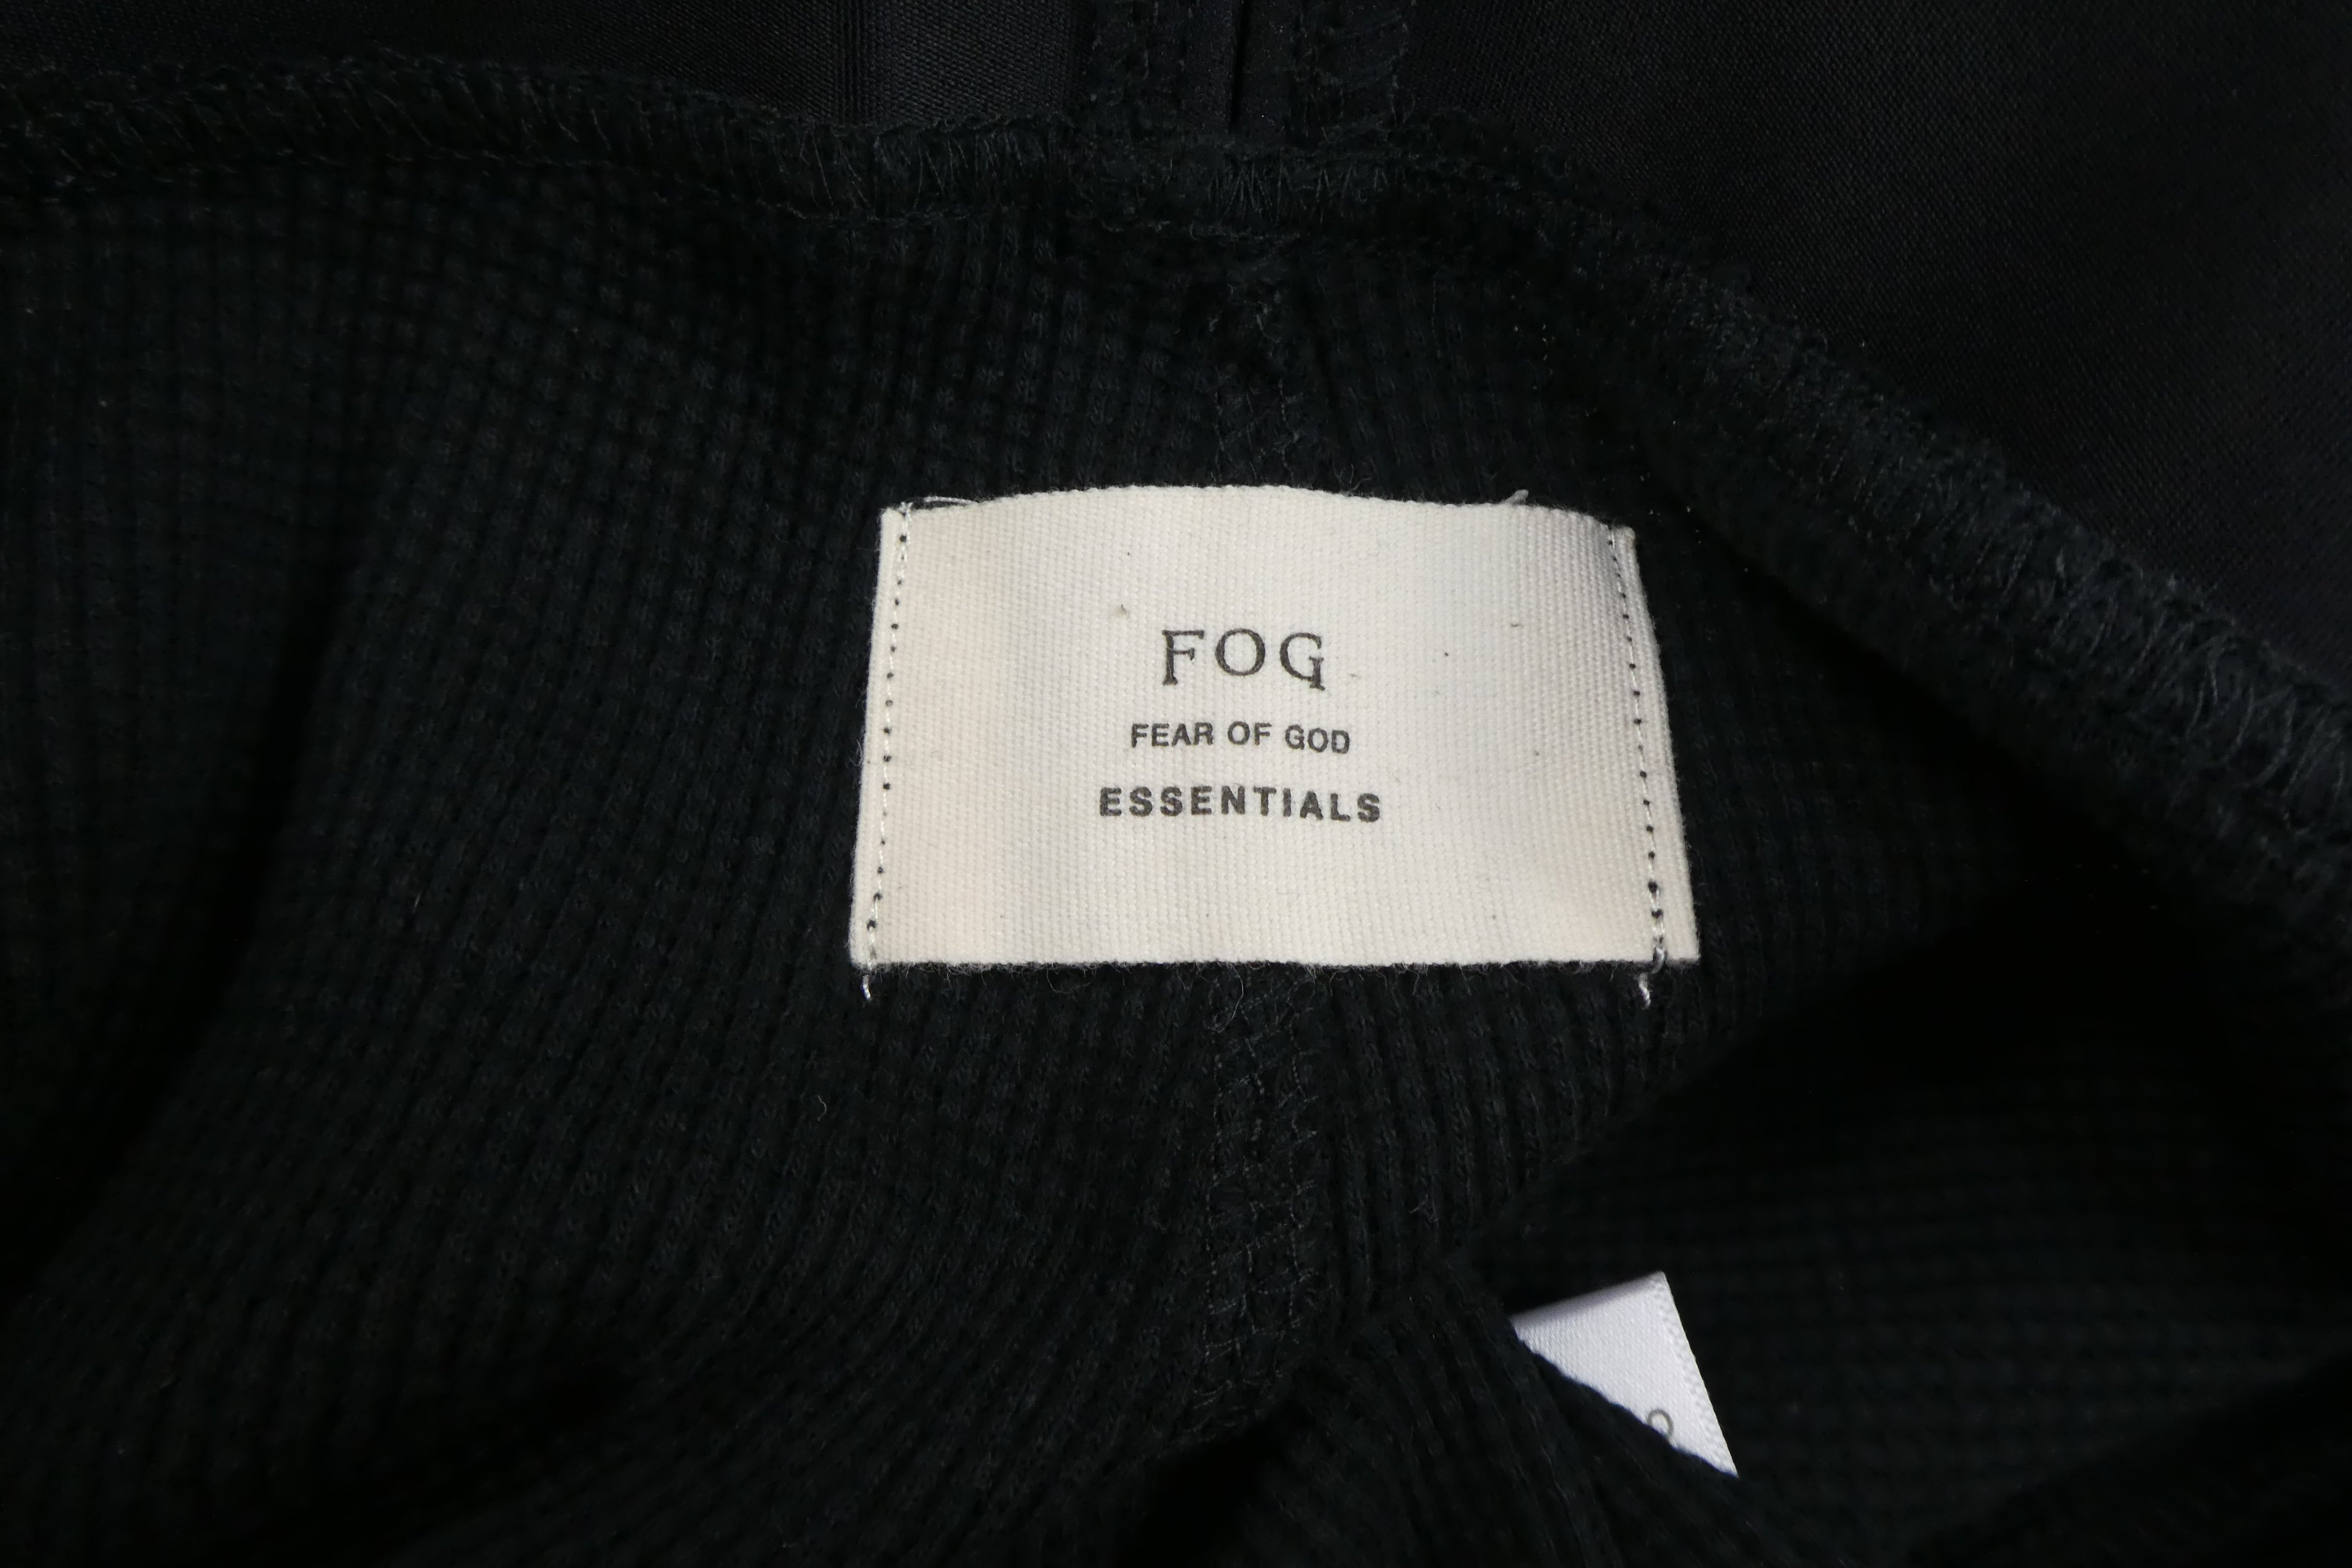 Fear Of God FOG Essentials Thermals - Small